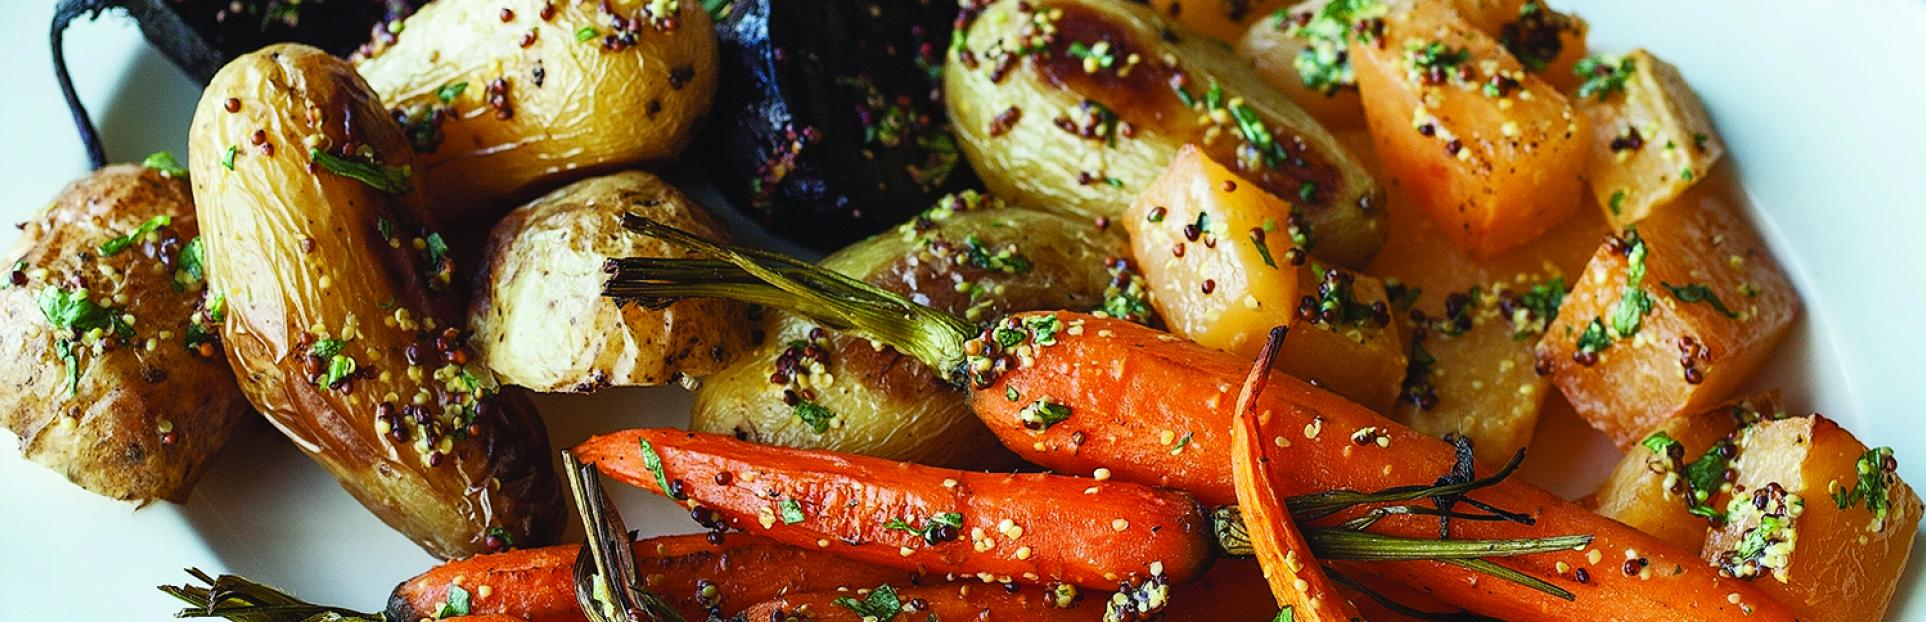 an image of tarragon-mustard roasted vegetables